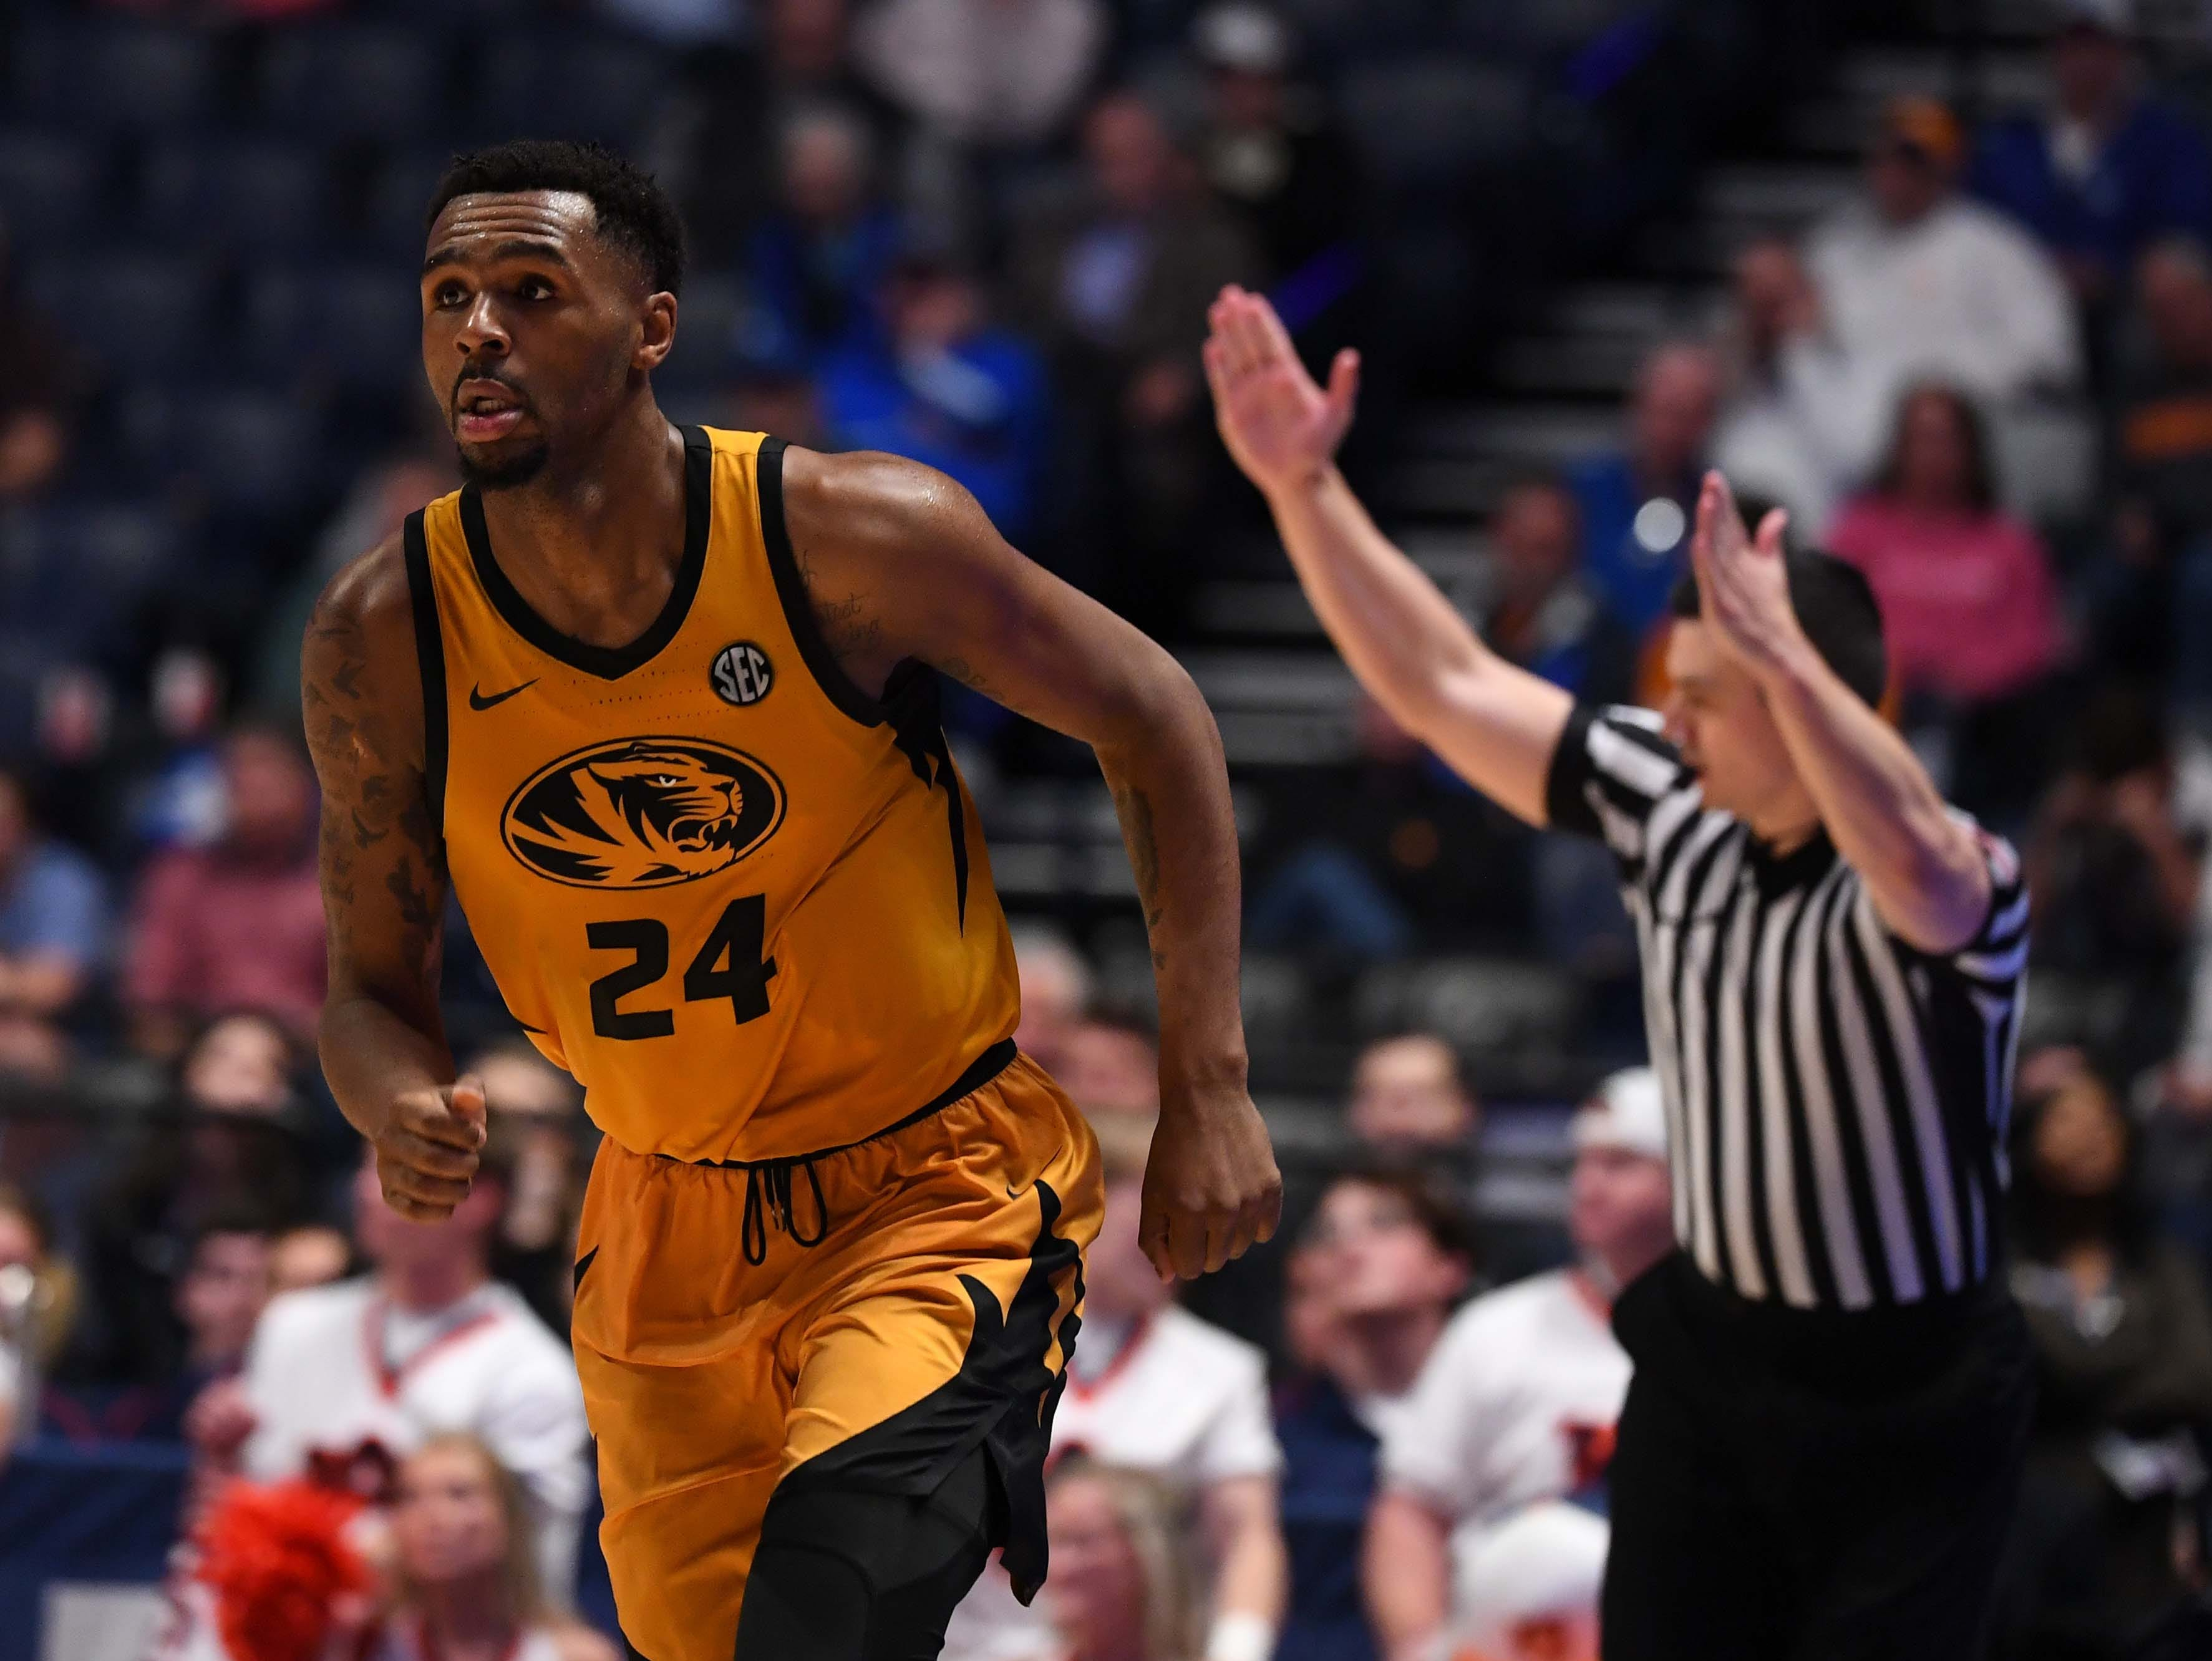 Mar 14, 2019; Nashville, TN, USA; Missouri Tigers forward Kevin Puryear (24) after making a three-pointer against the Auburn Tigers during the first half of the SEC conference tournament at Bridgestone Arena. Mandatory Credit: Christopher Hanewinckel-USA TODAY Sports